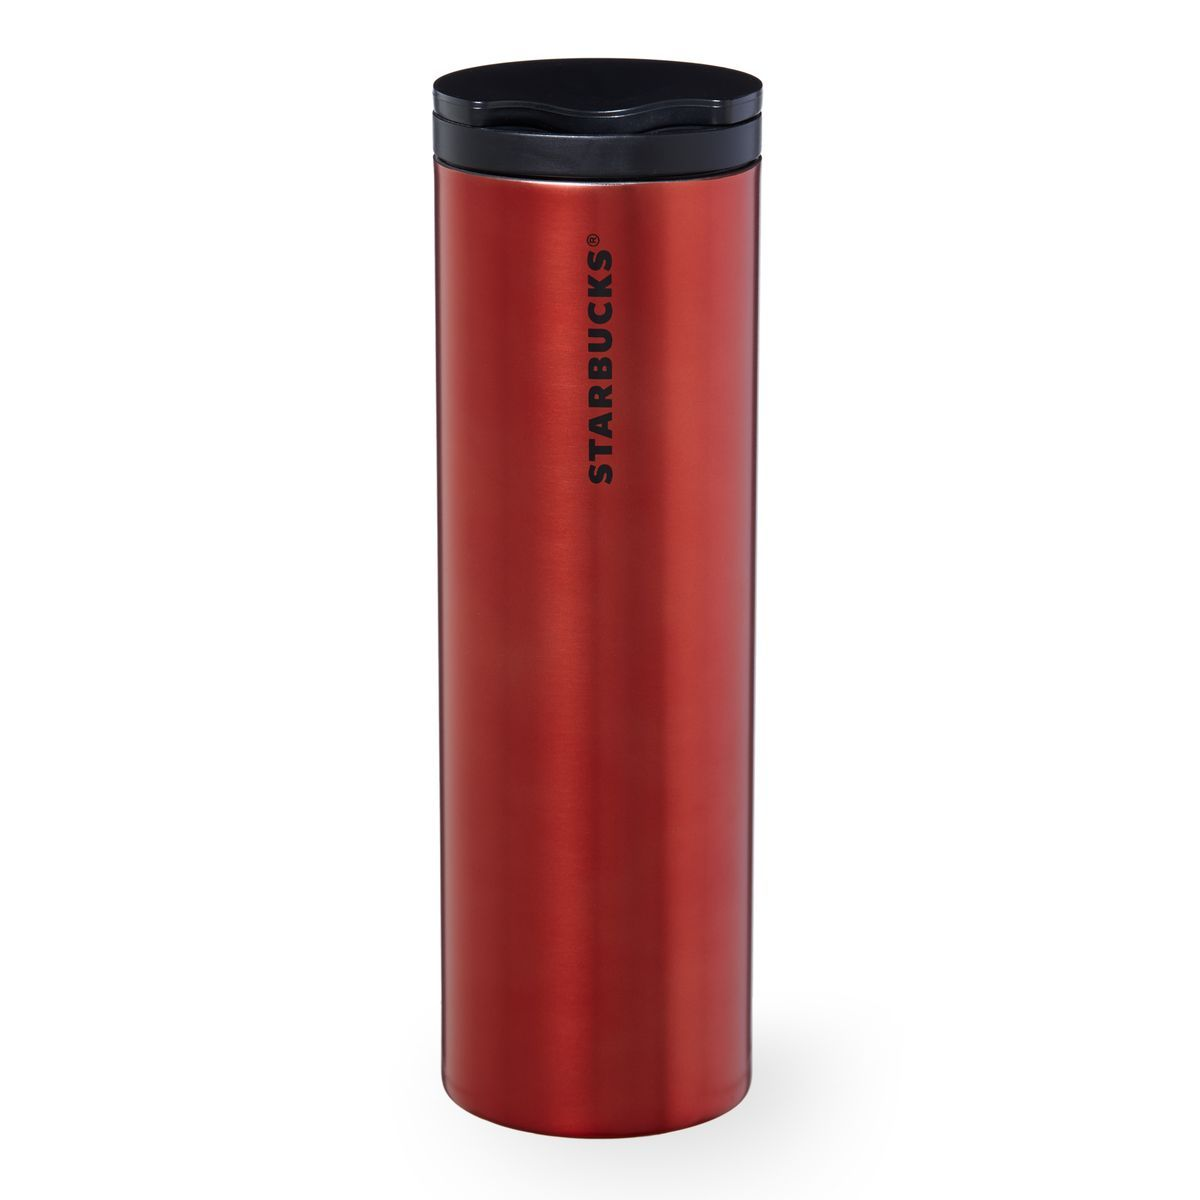 Stainless steel ornaments - A Slender Stainless Steel Coffee Tumbler With A Rich Red Sheen